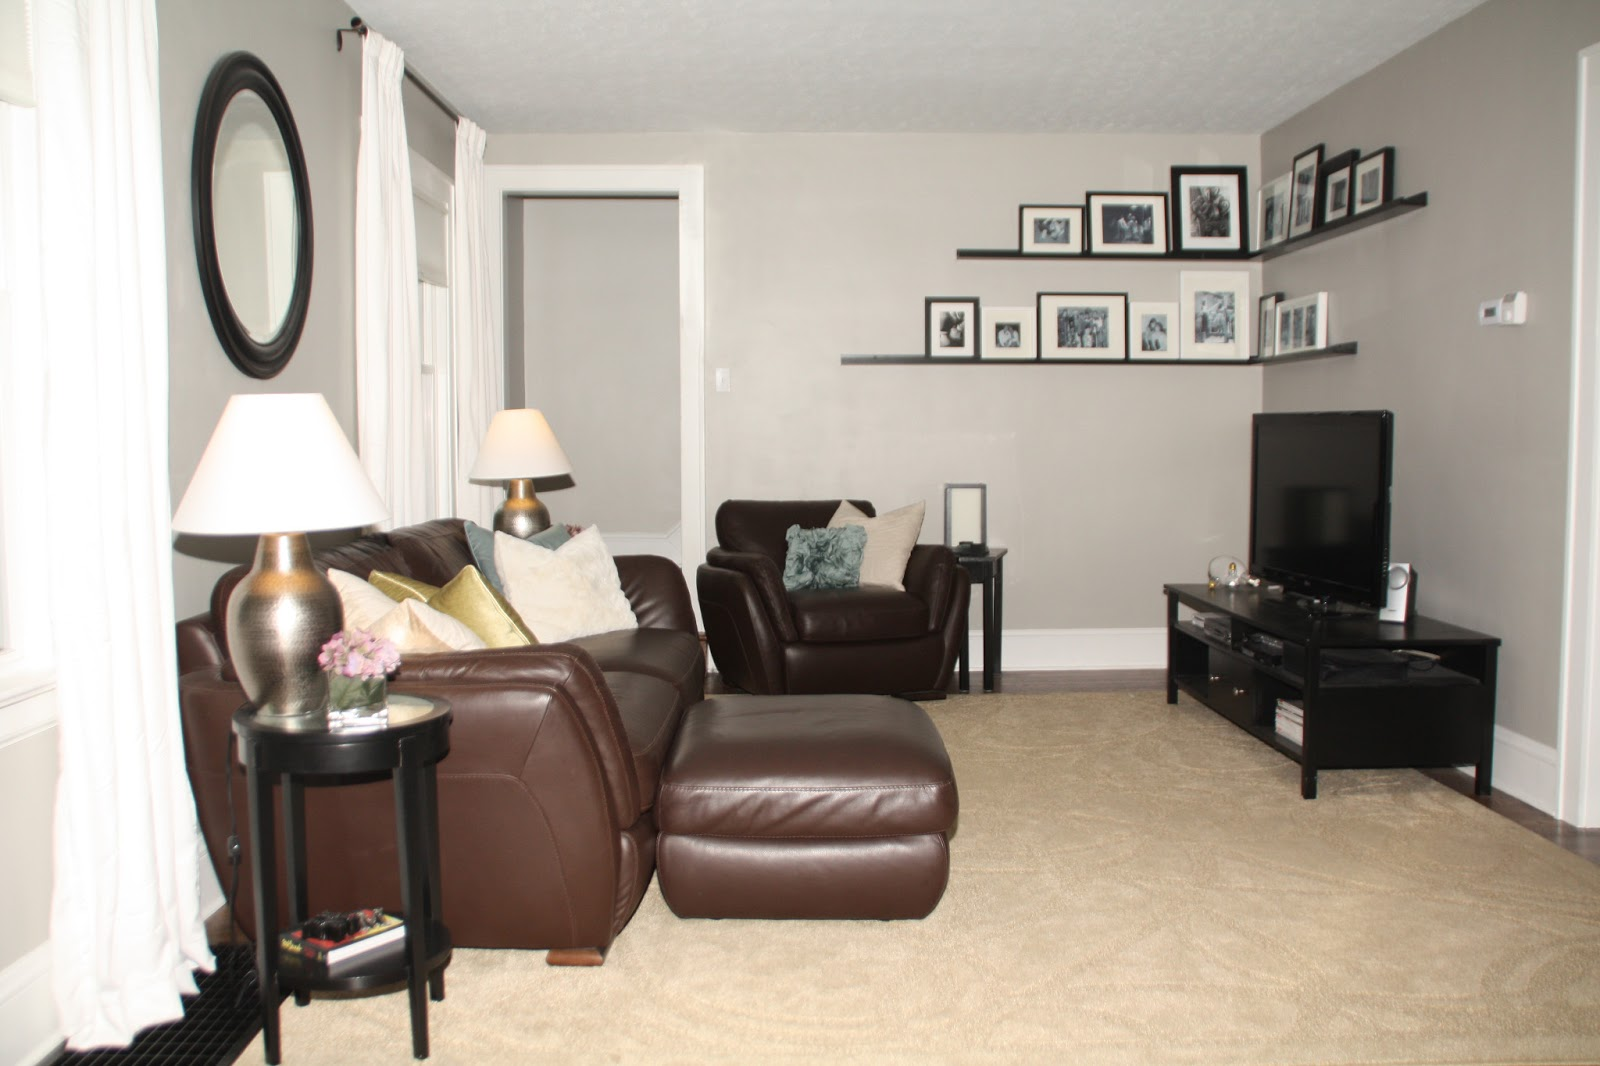 10 x 12 living room design New Changes in the Living Room   Danks and Honey 1066 X 1600